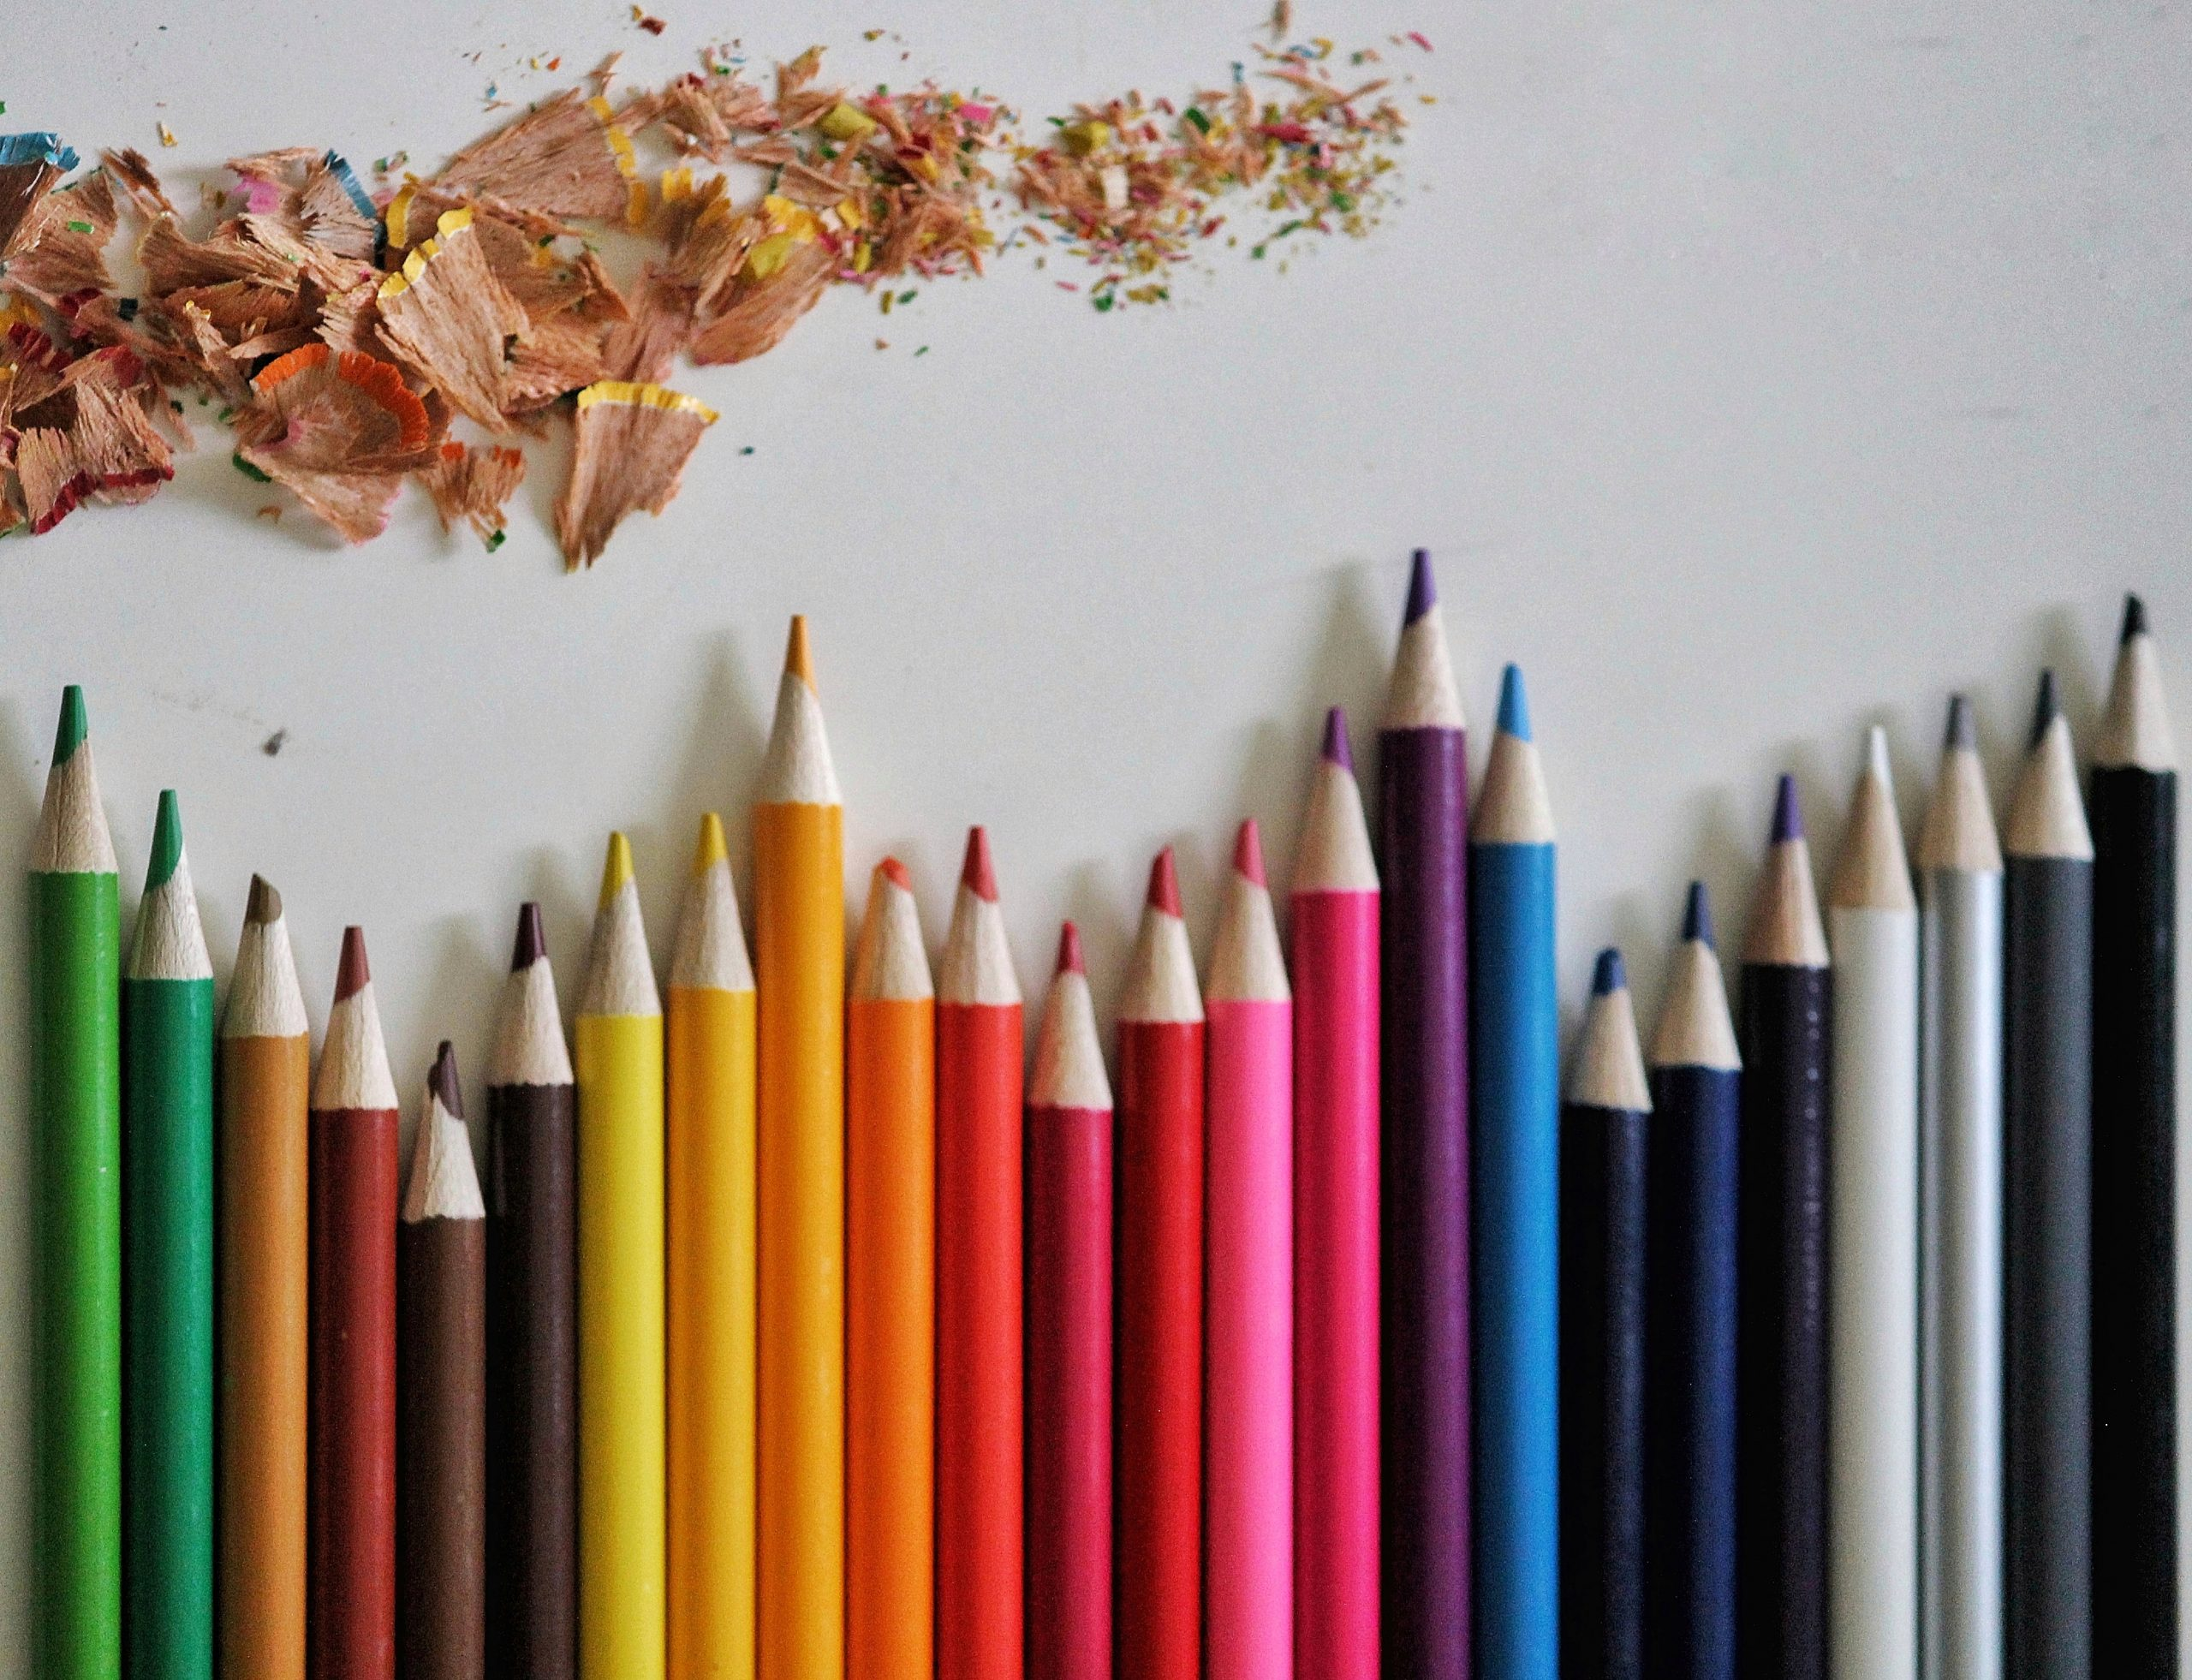 pencil colors and shavings